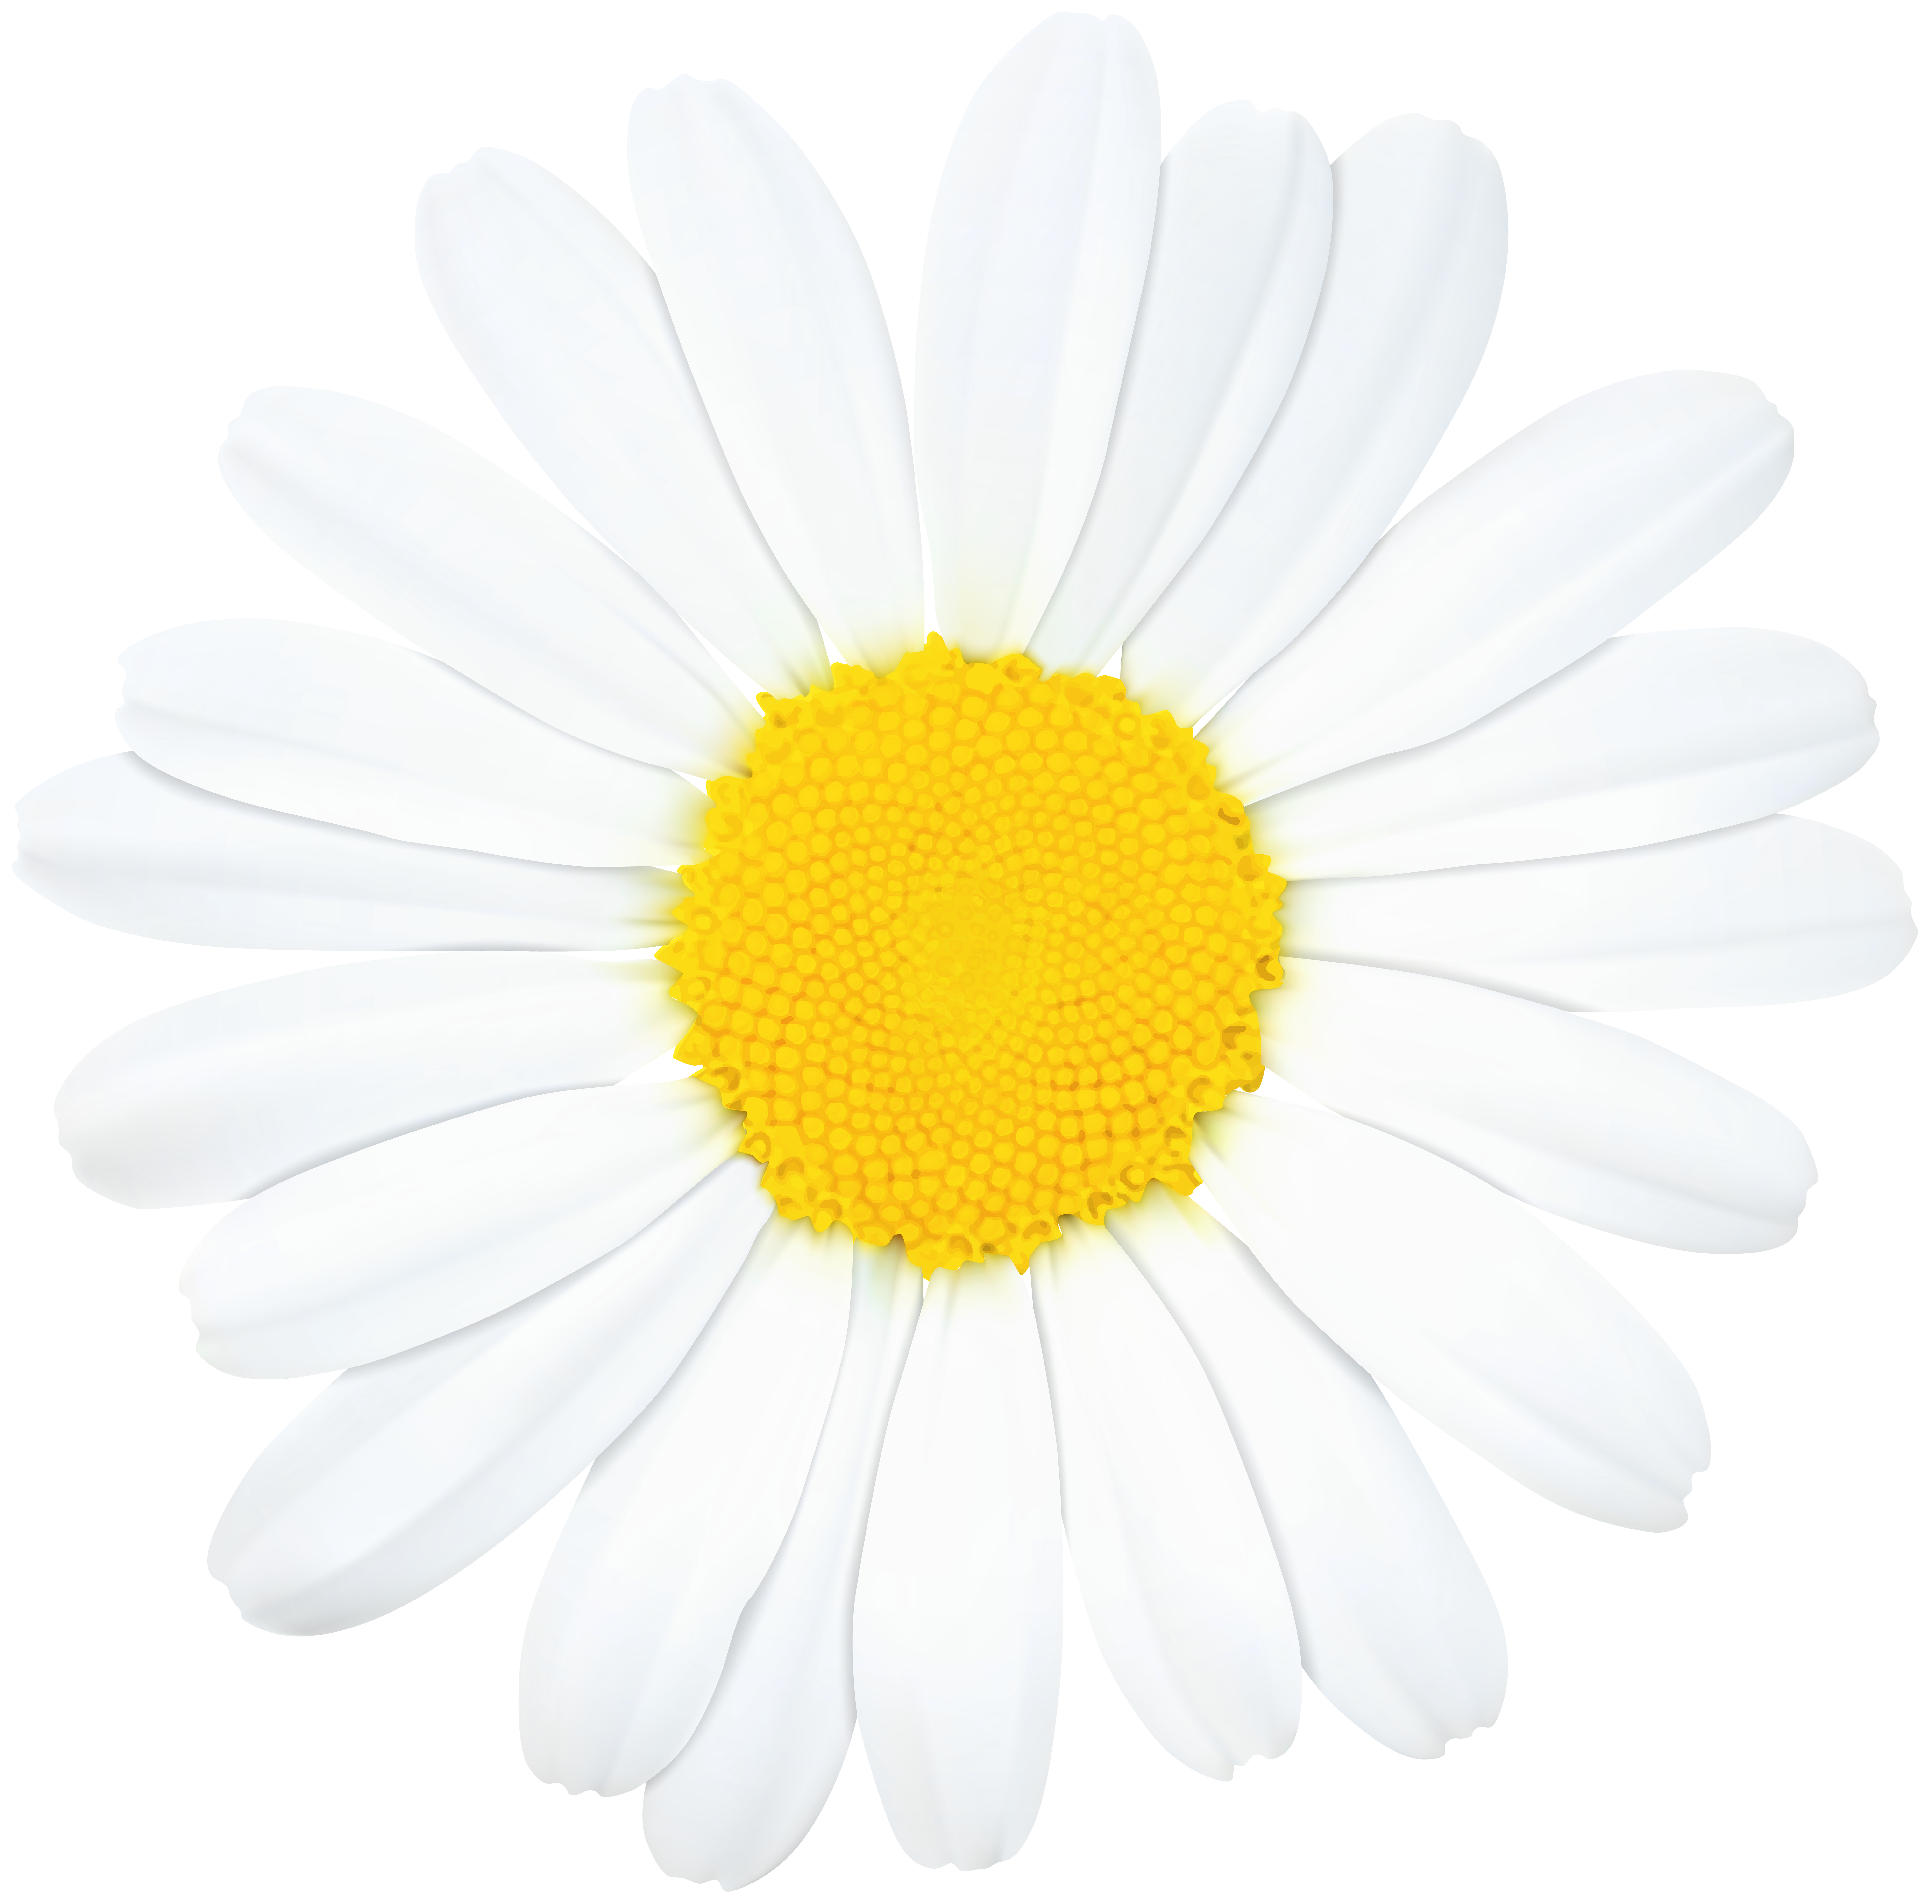 Daisy flower border clipart clip black and white download Daisy Flower PNG Clip Art Image | Gallery Yopriceville - High ... clip black and white download